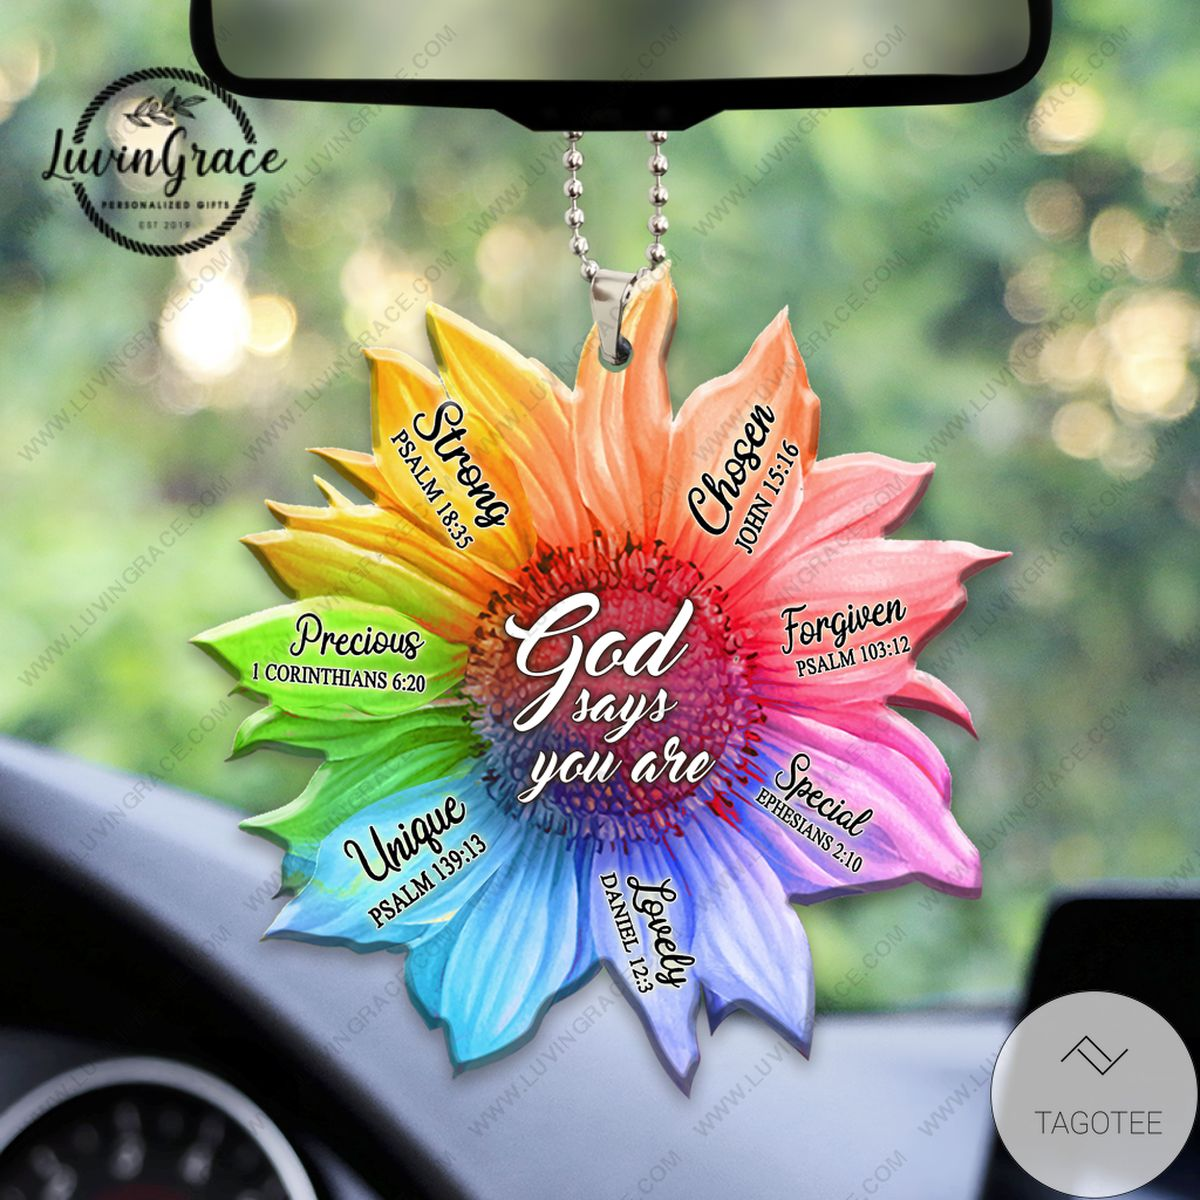 Top Rated Rainbow Sunflower God Says You Are Car Hanging Ornament